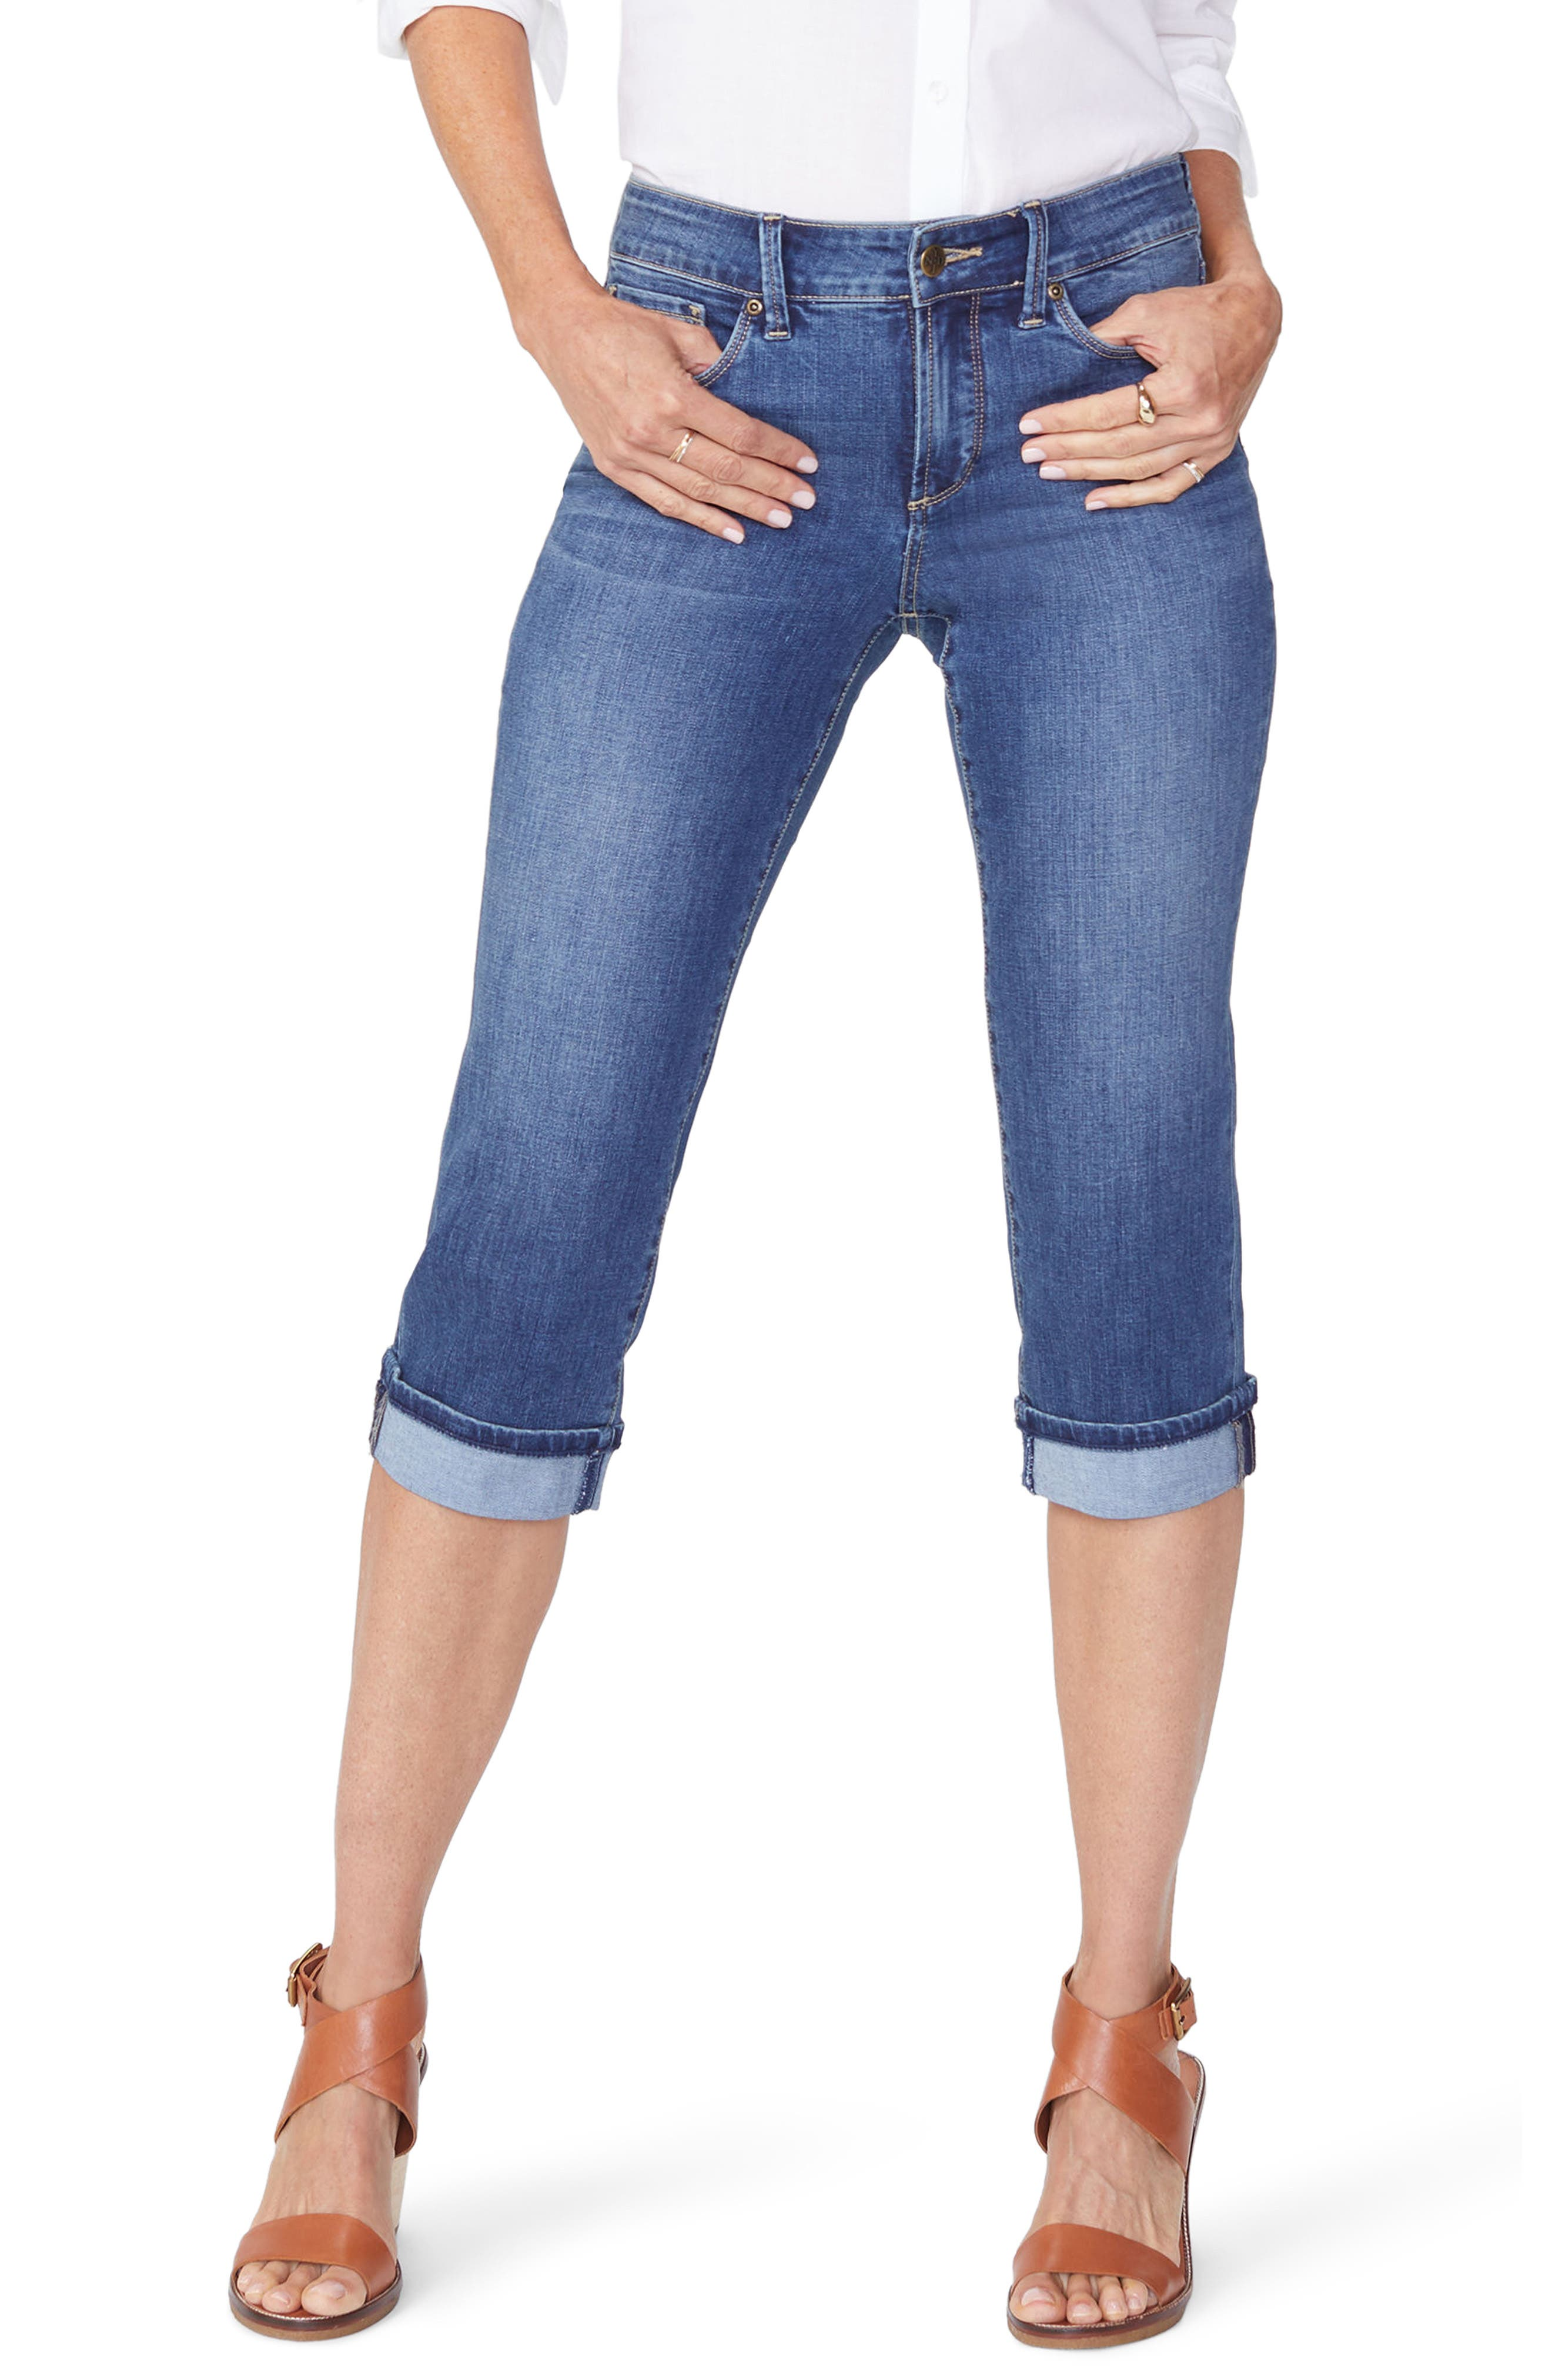 Marilyn High Waist Cuffed Stretch Crop Jeans,                         Main,                         color, ZIMBALI